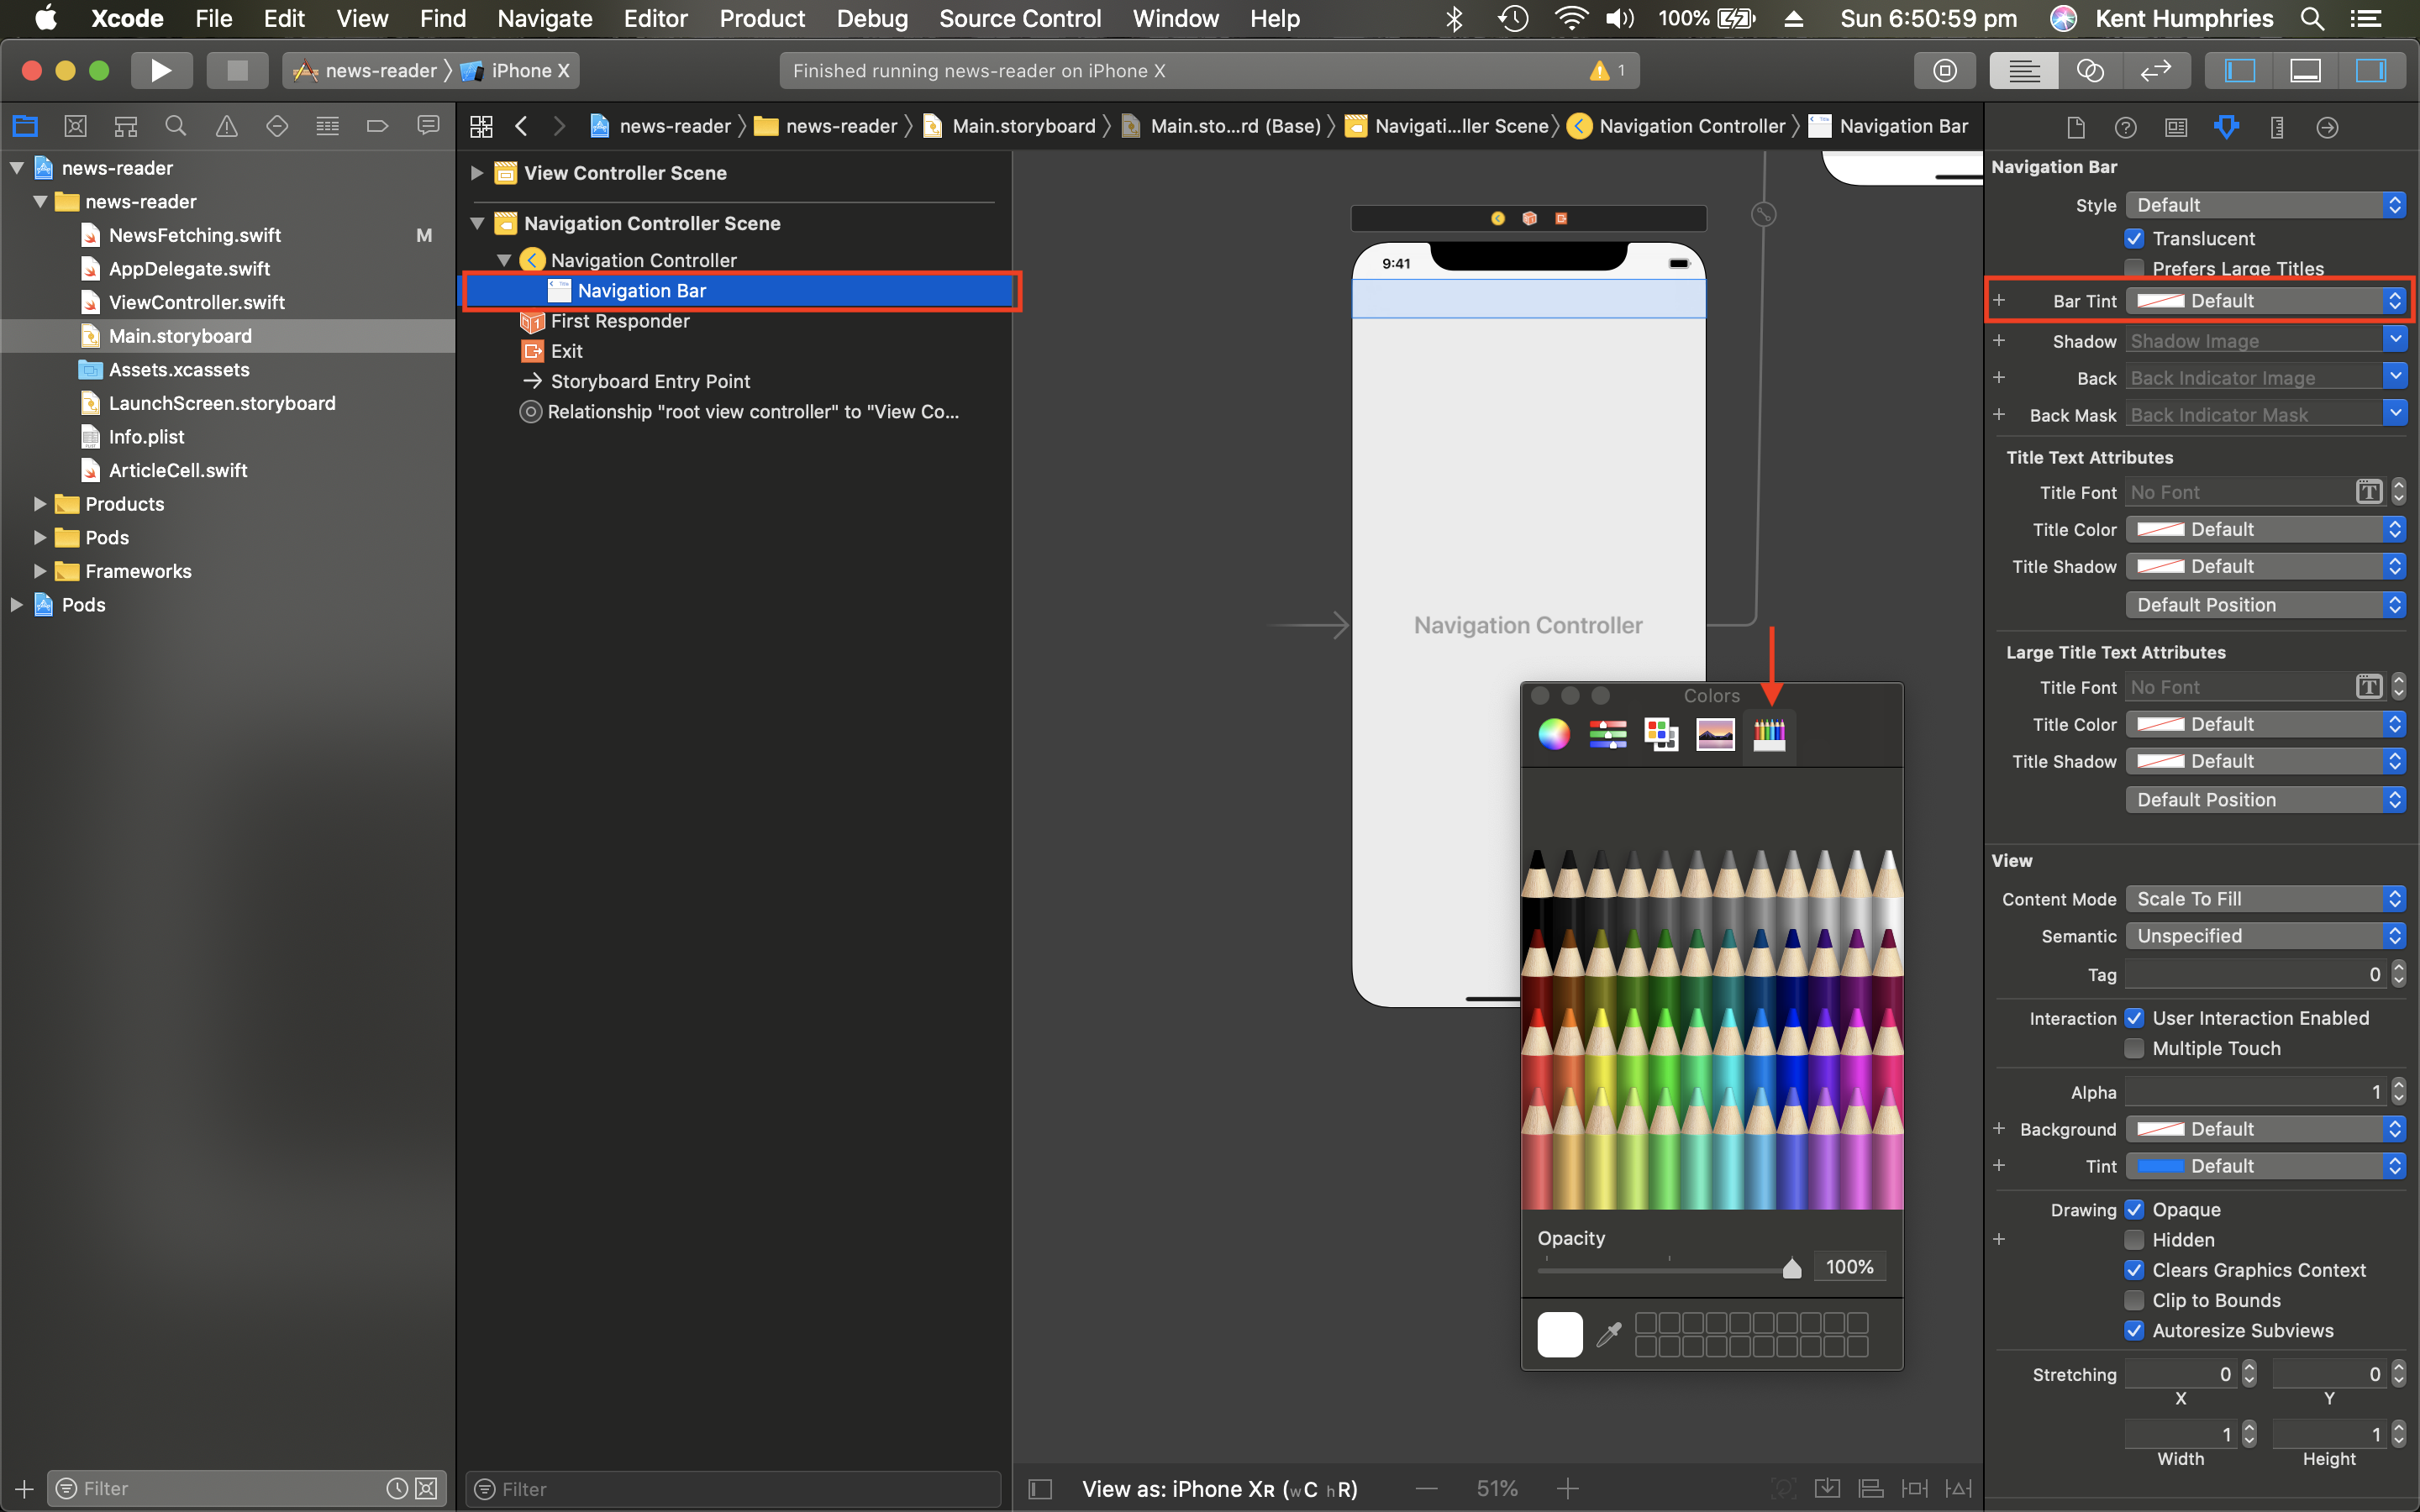 A screenshot of Xcode with parts of the window highlighted